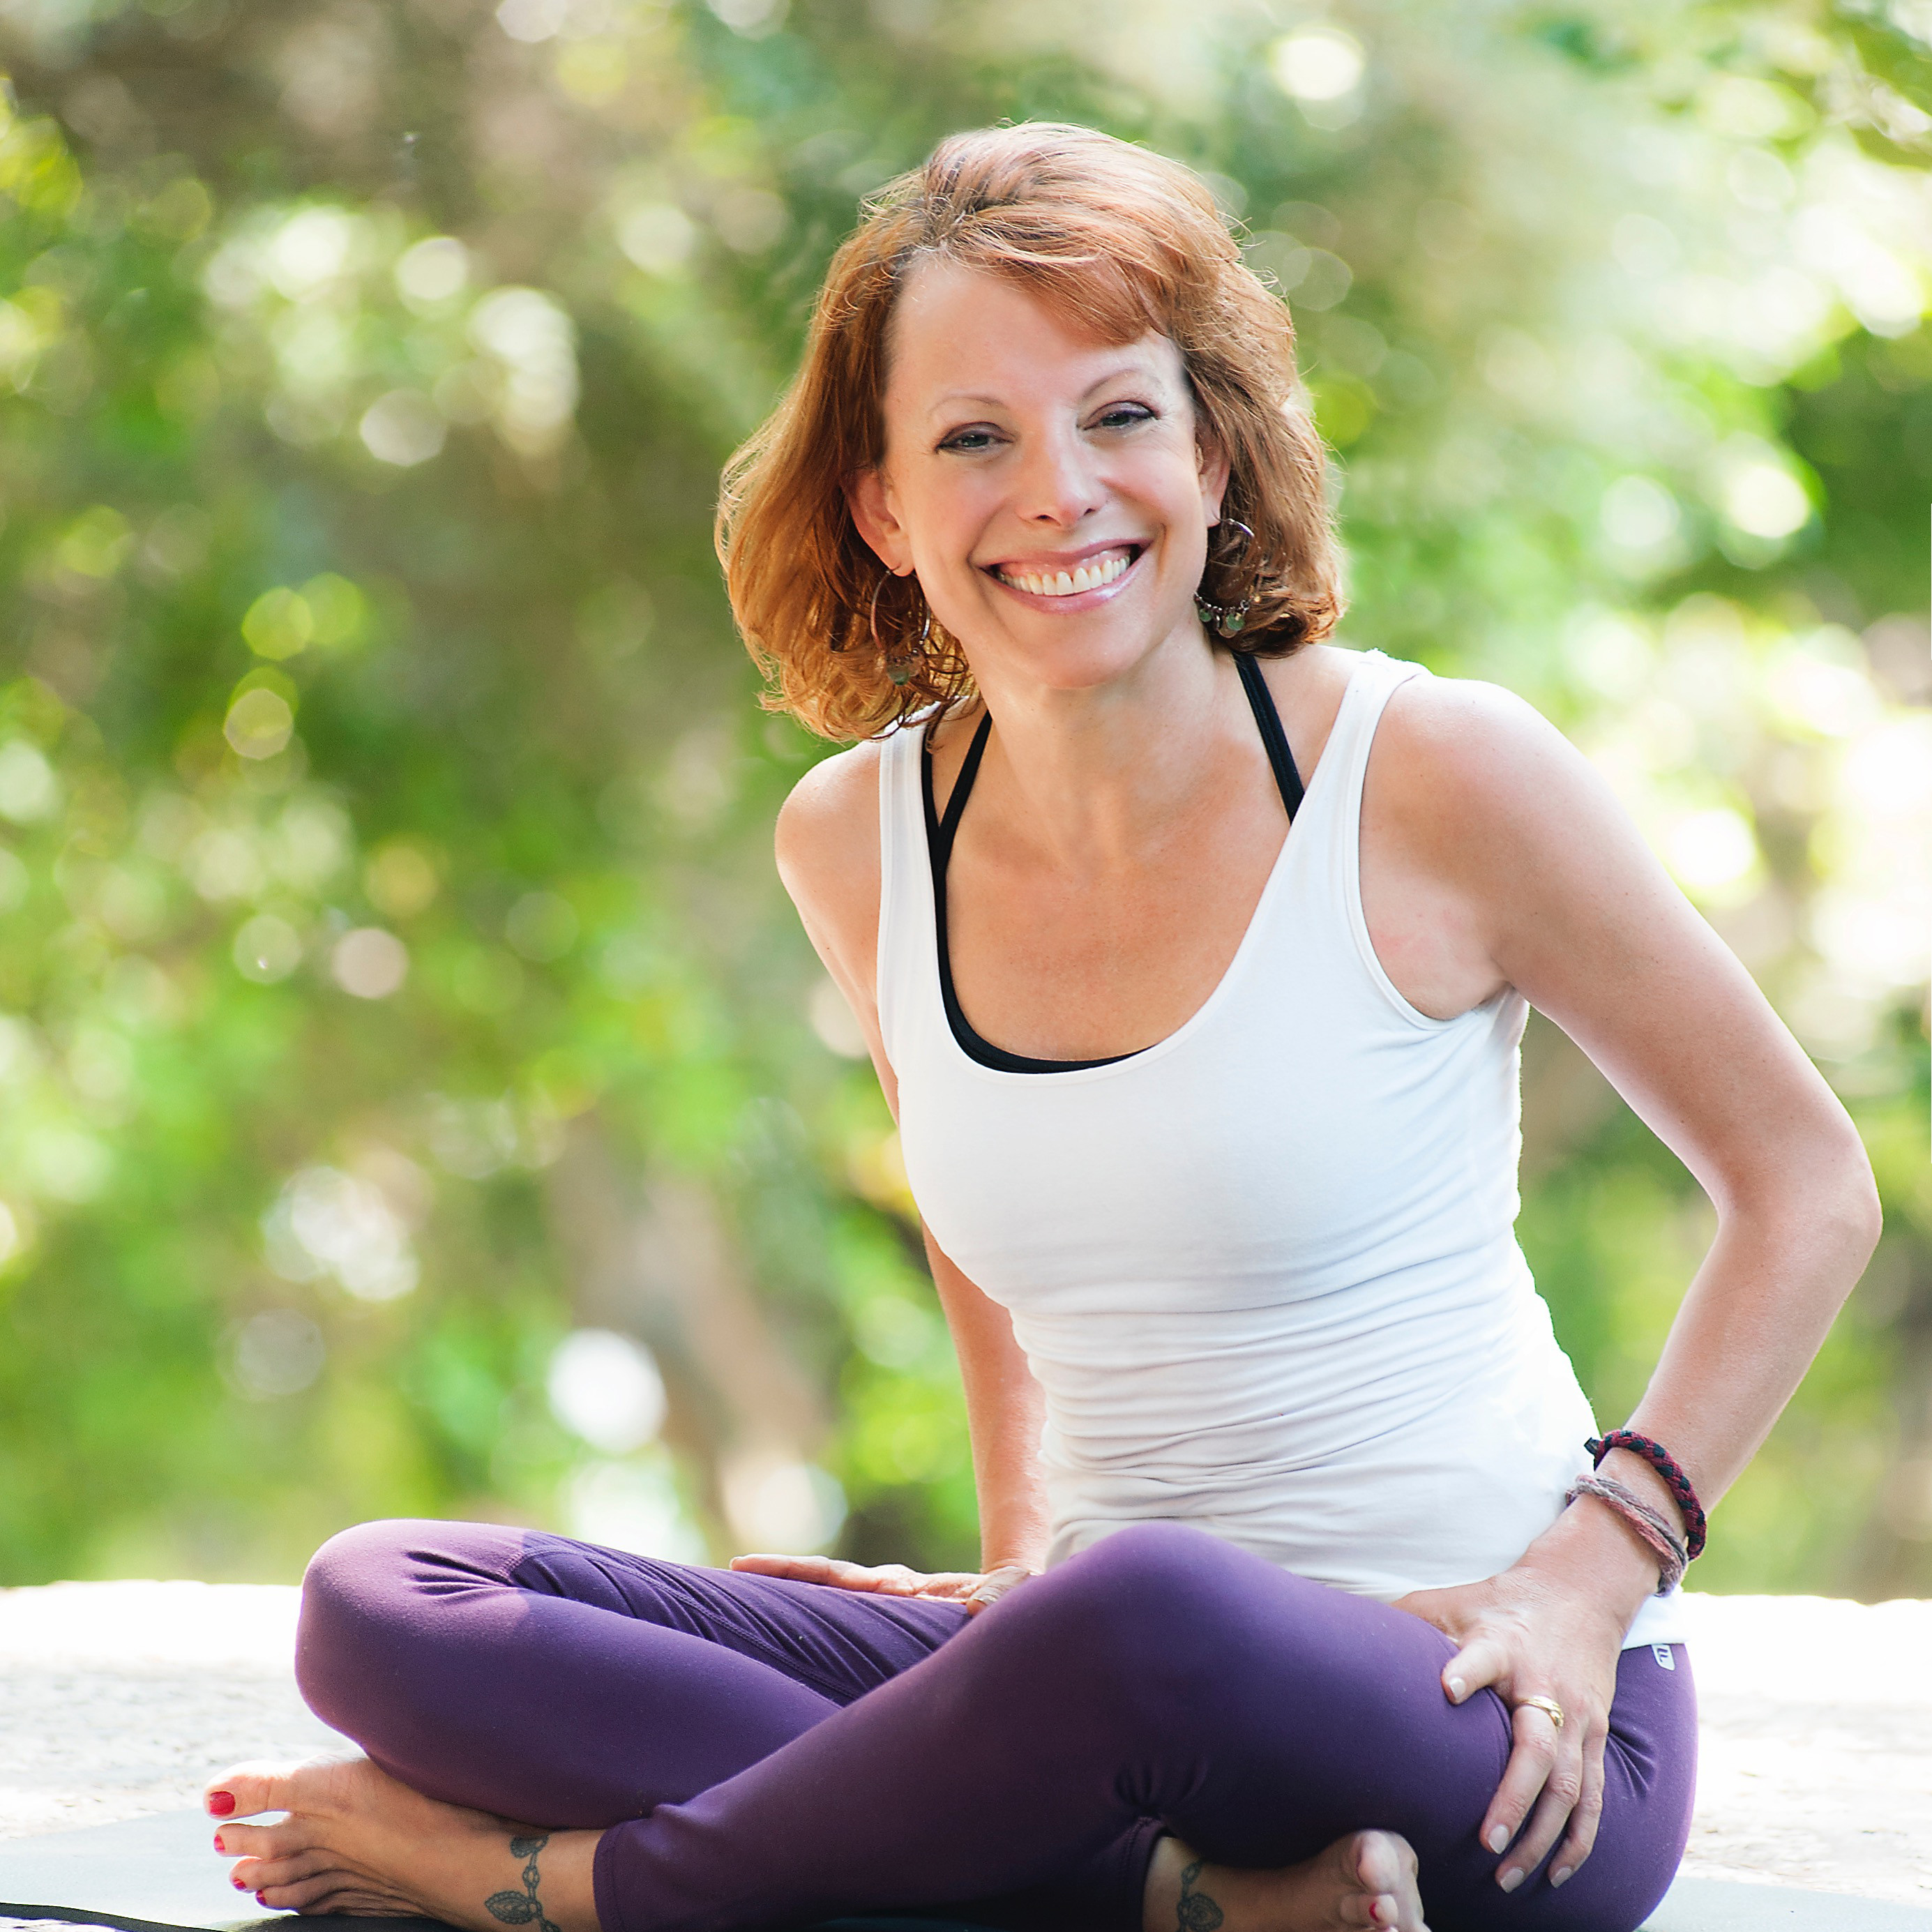 jeanne-heileman-yoga-teacher-trainer-12